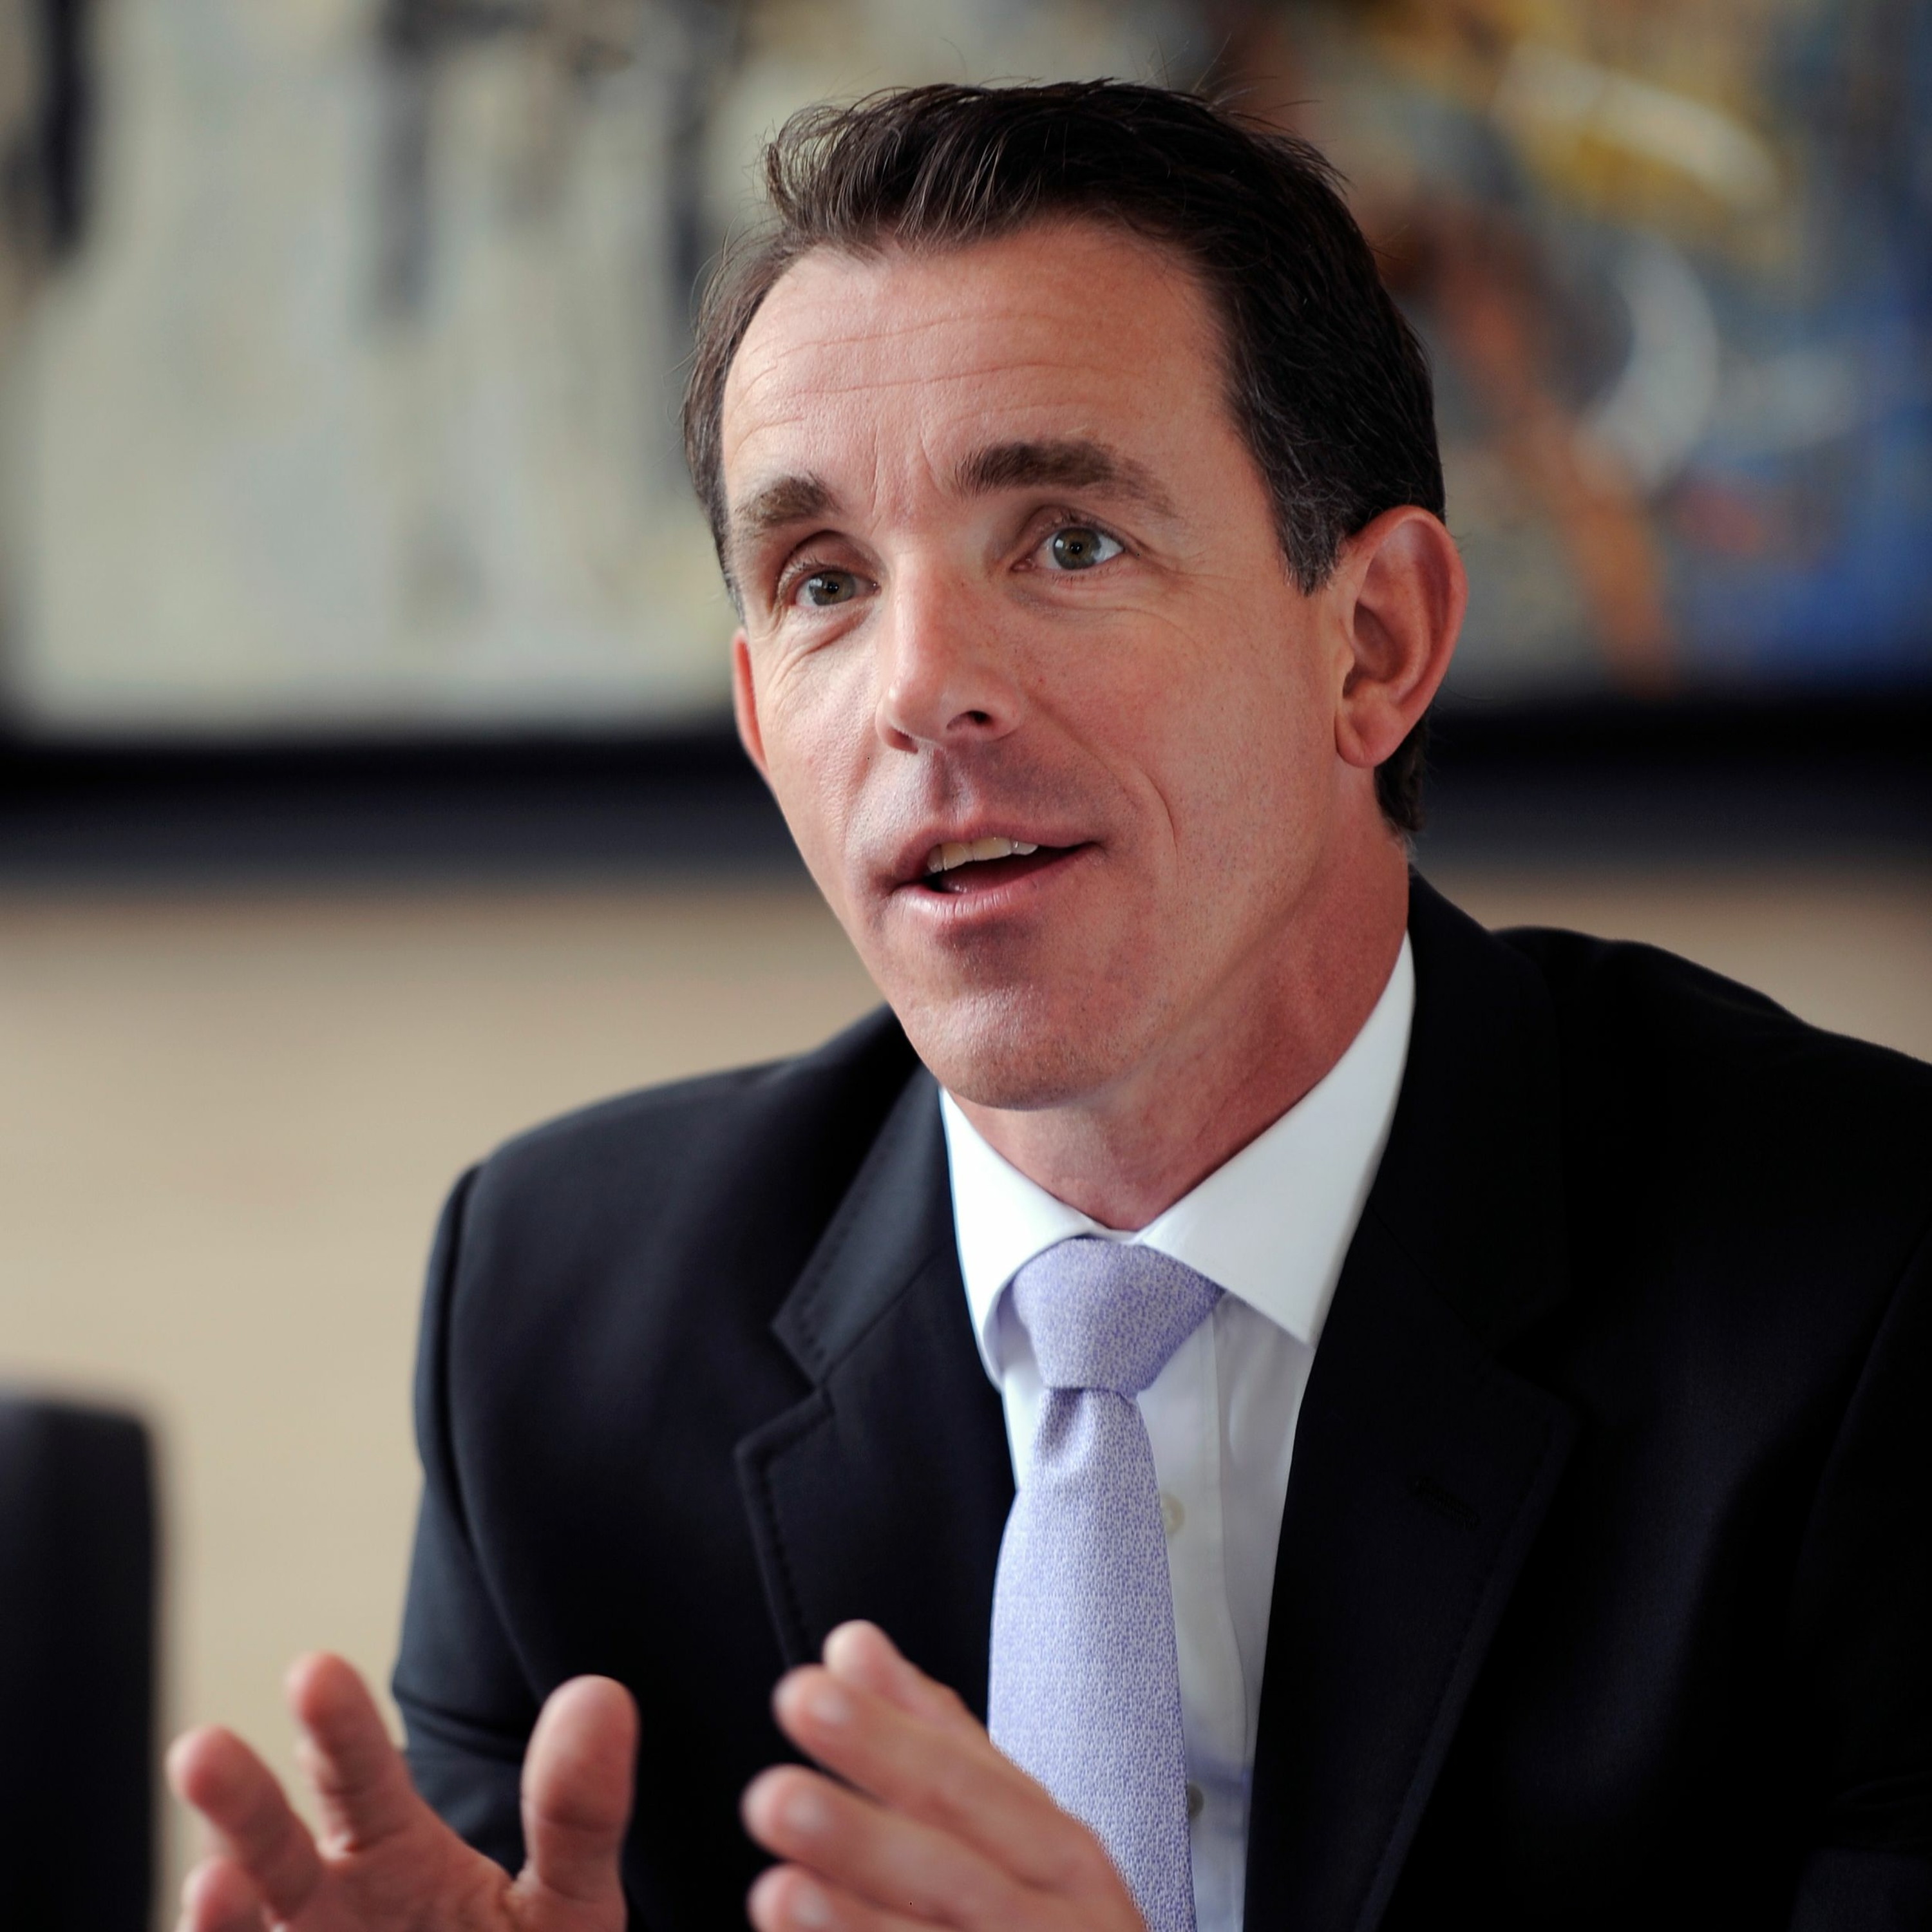 Anton Jooste outlines what's at stake if Africa doesn't gear up for the new digital economy